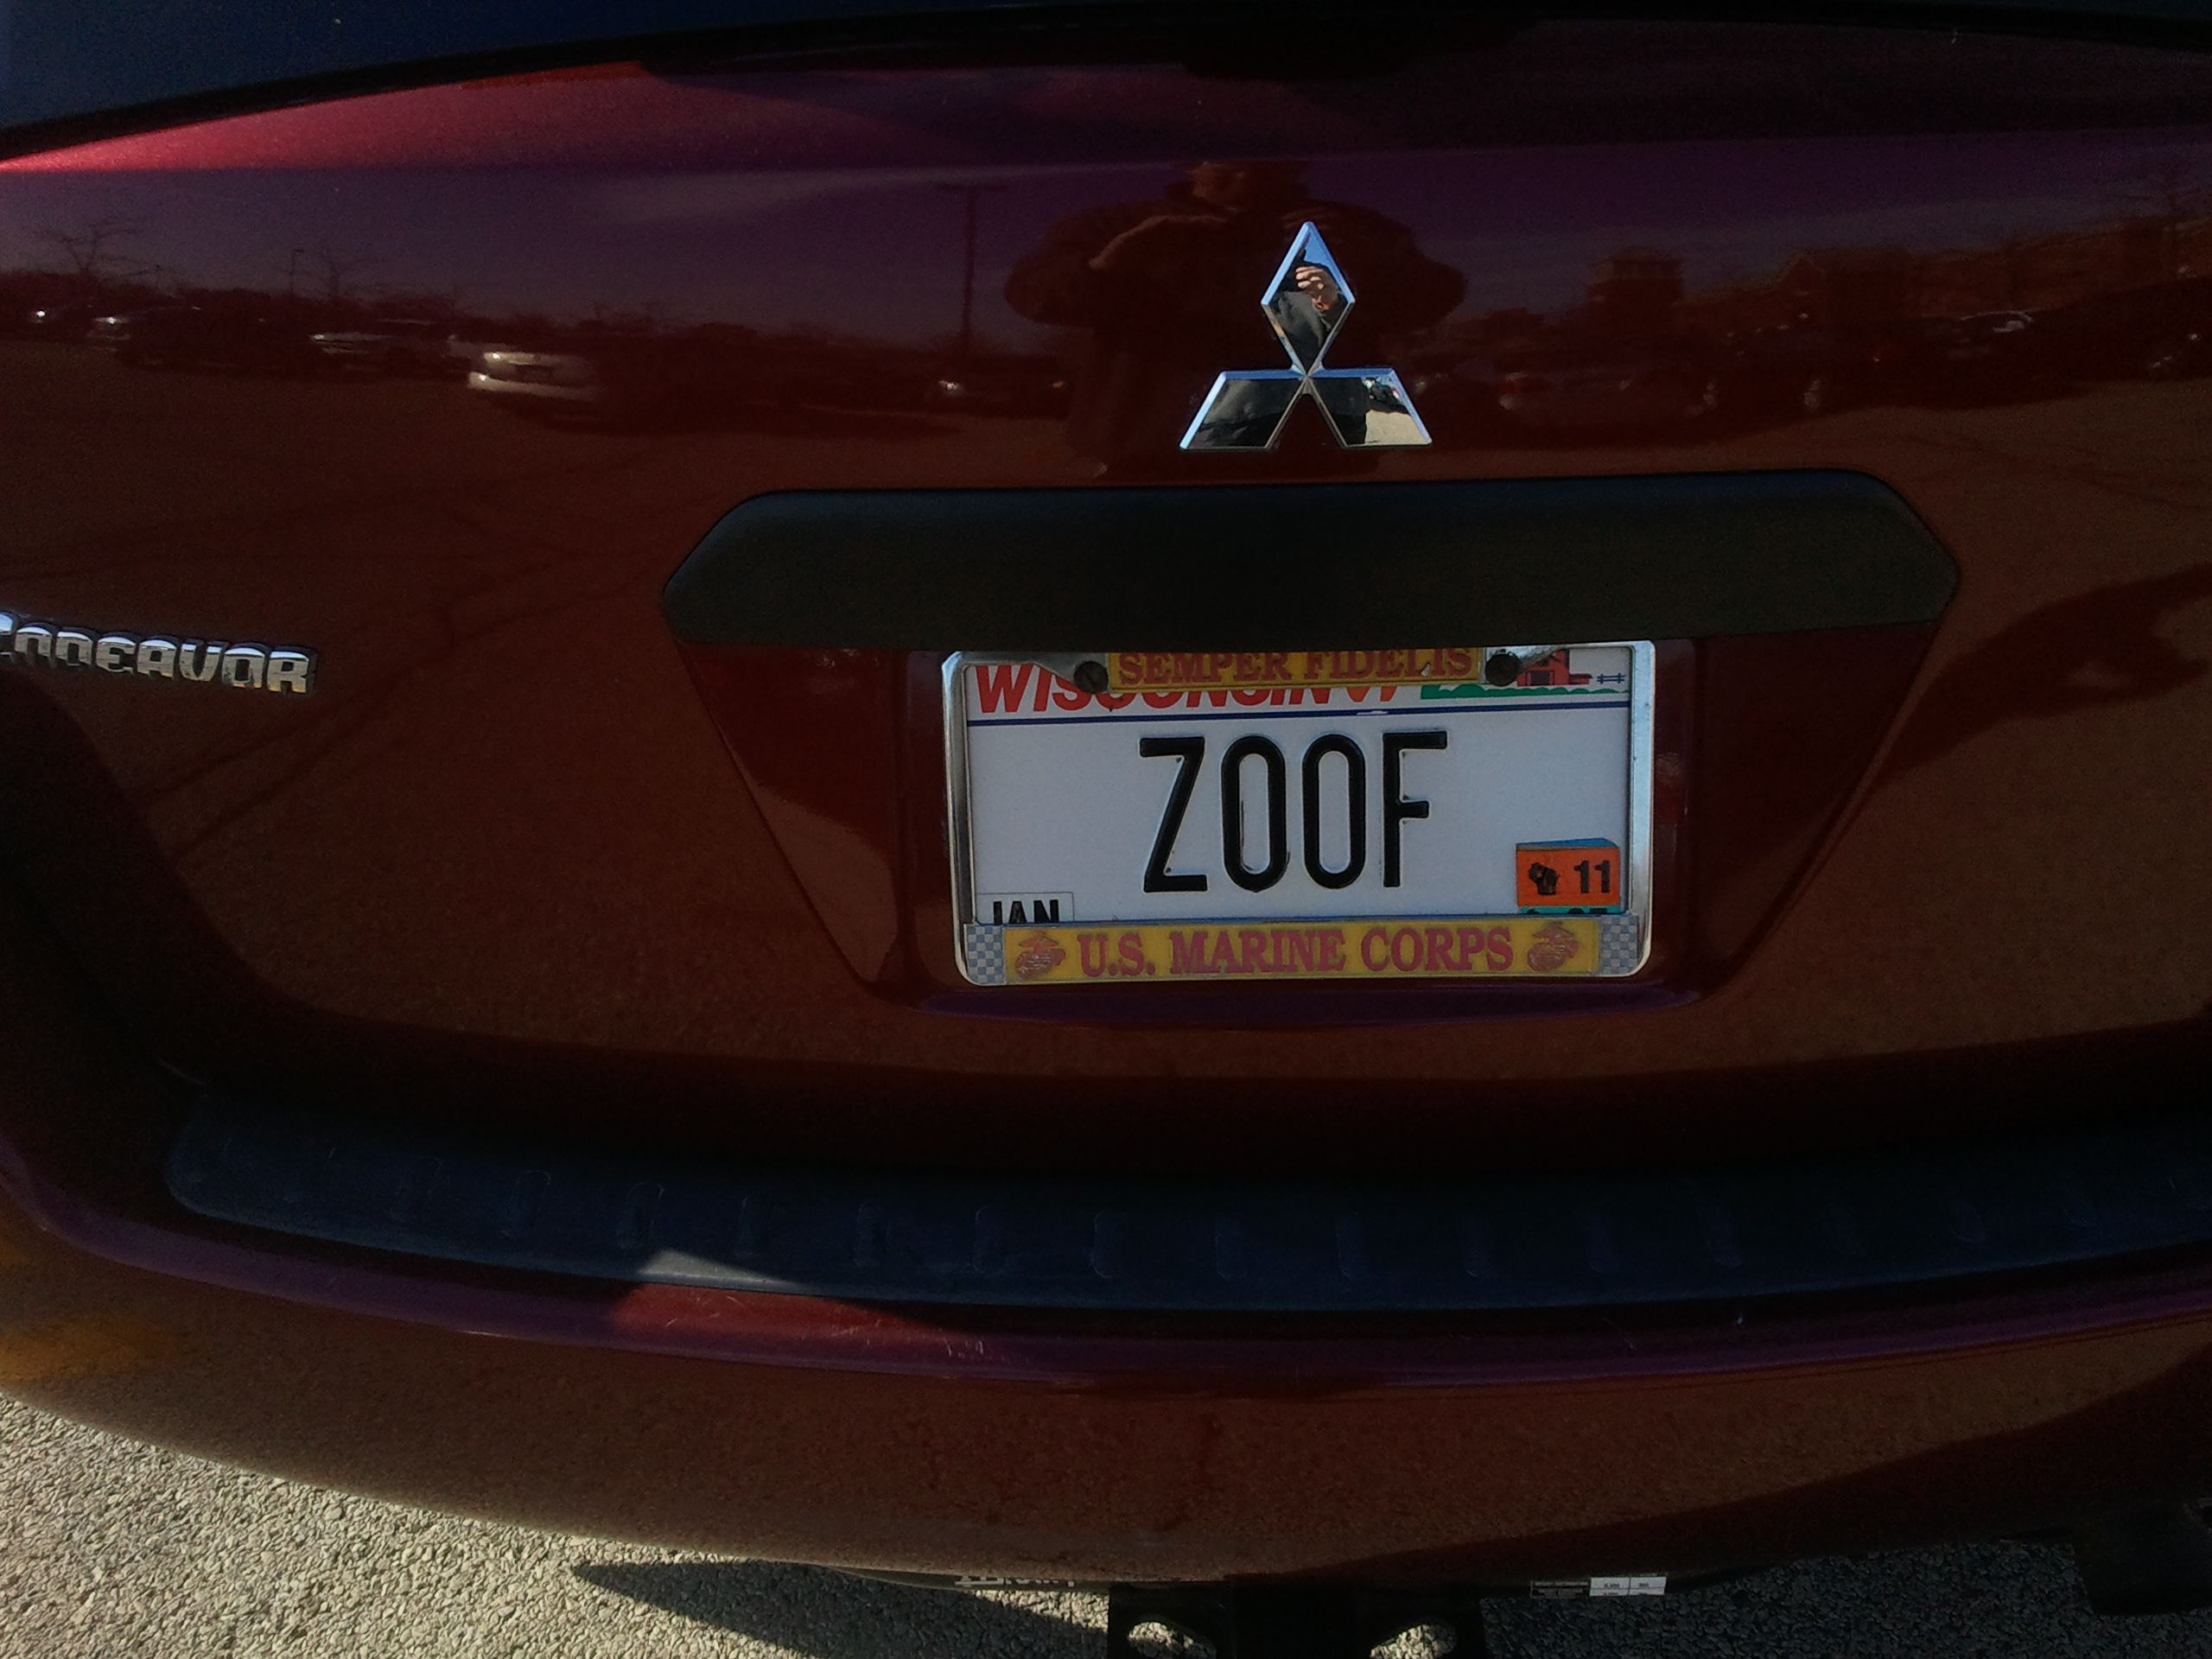 Photo of a license plate: ZOOF